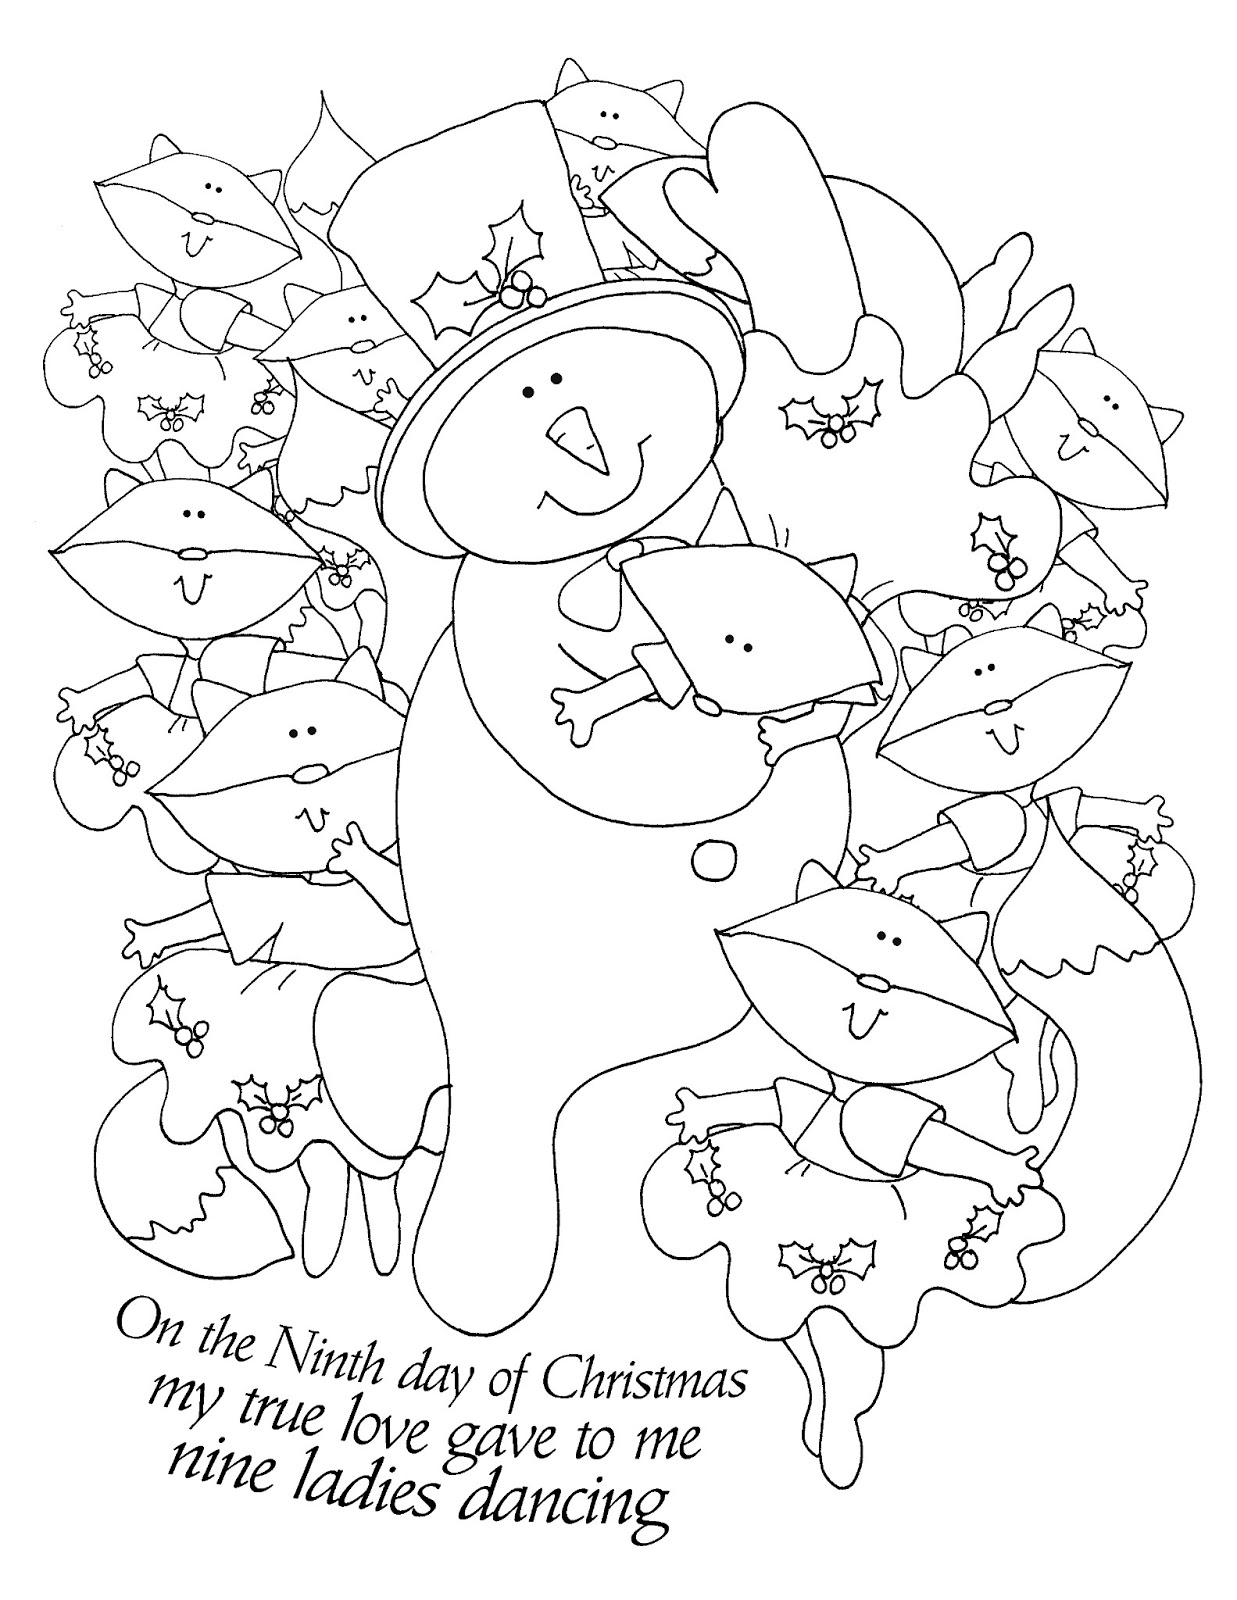 Free Dearie Dolls Digi Stamps: On the Ninth Day of